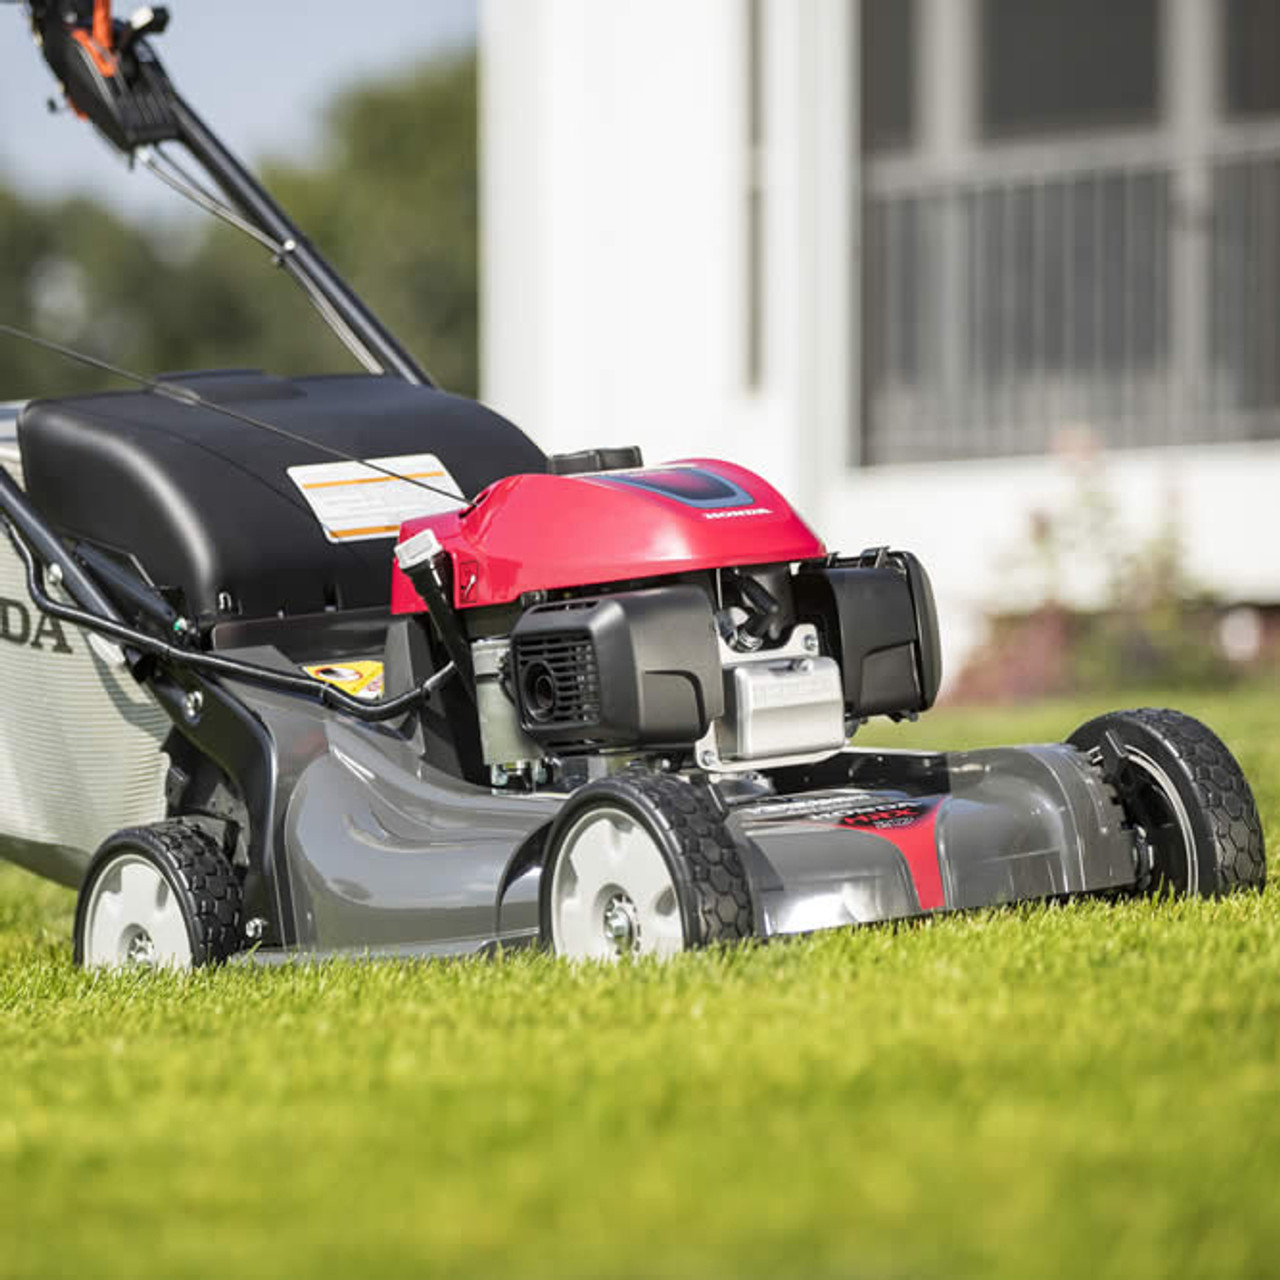 "Honda HRX217HZA 21"" Walk Behind Self-Propelled Lawn Mower w/ GCV200 Engine & Electric Start Image 5"